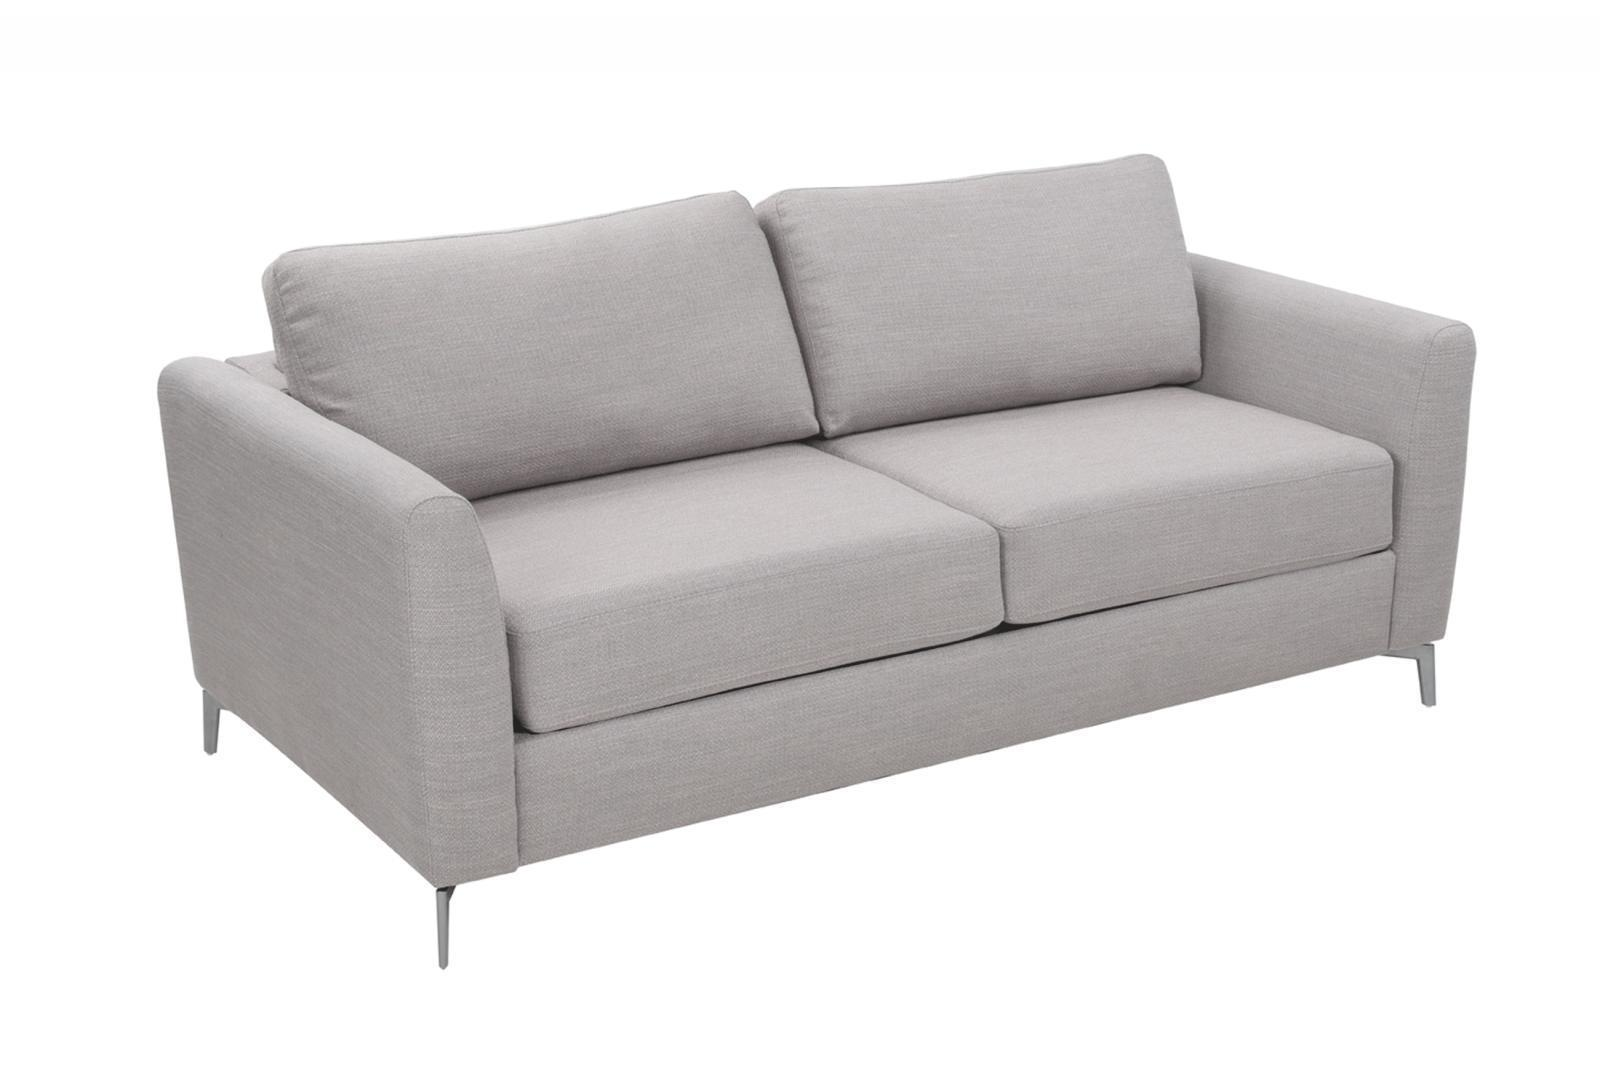 ashfield modern light grey fabric sectional sofa can you paint a bonded leather esf alex bed contemporary